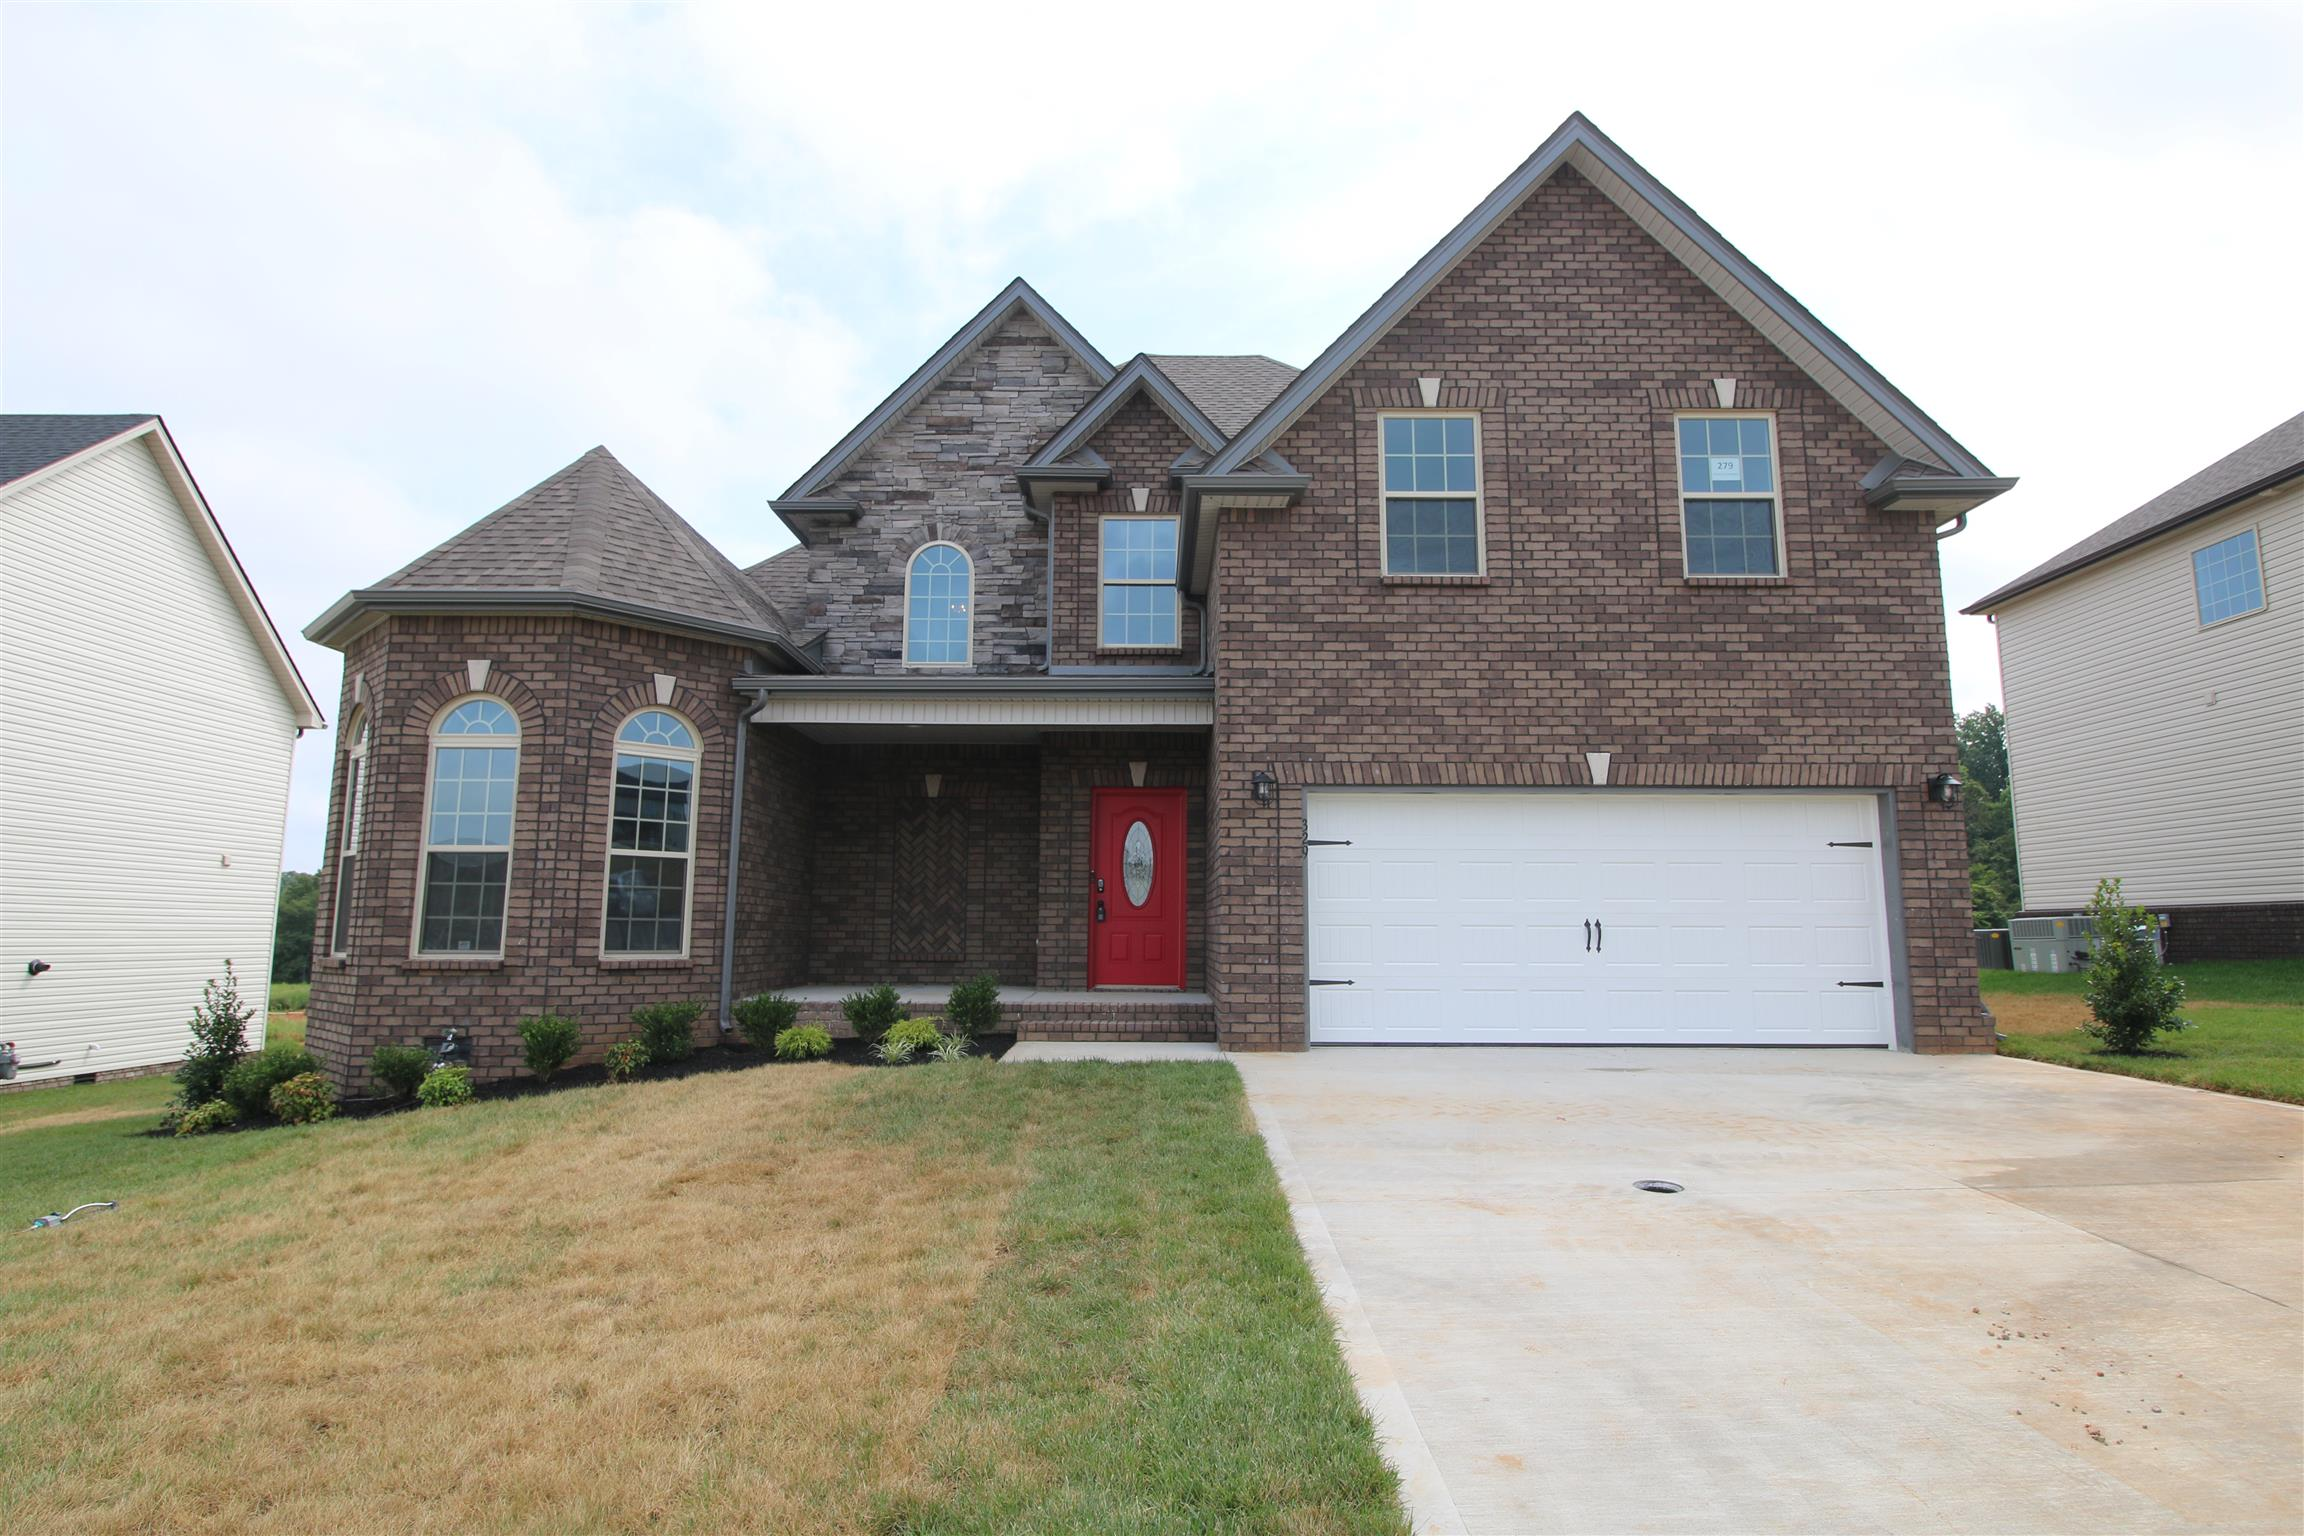 279 The Groves at Hearthstone, Clarksville, TN 37040 - Clarksville, TN real estate listing